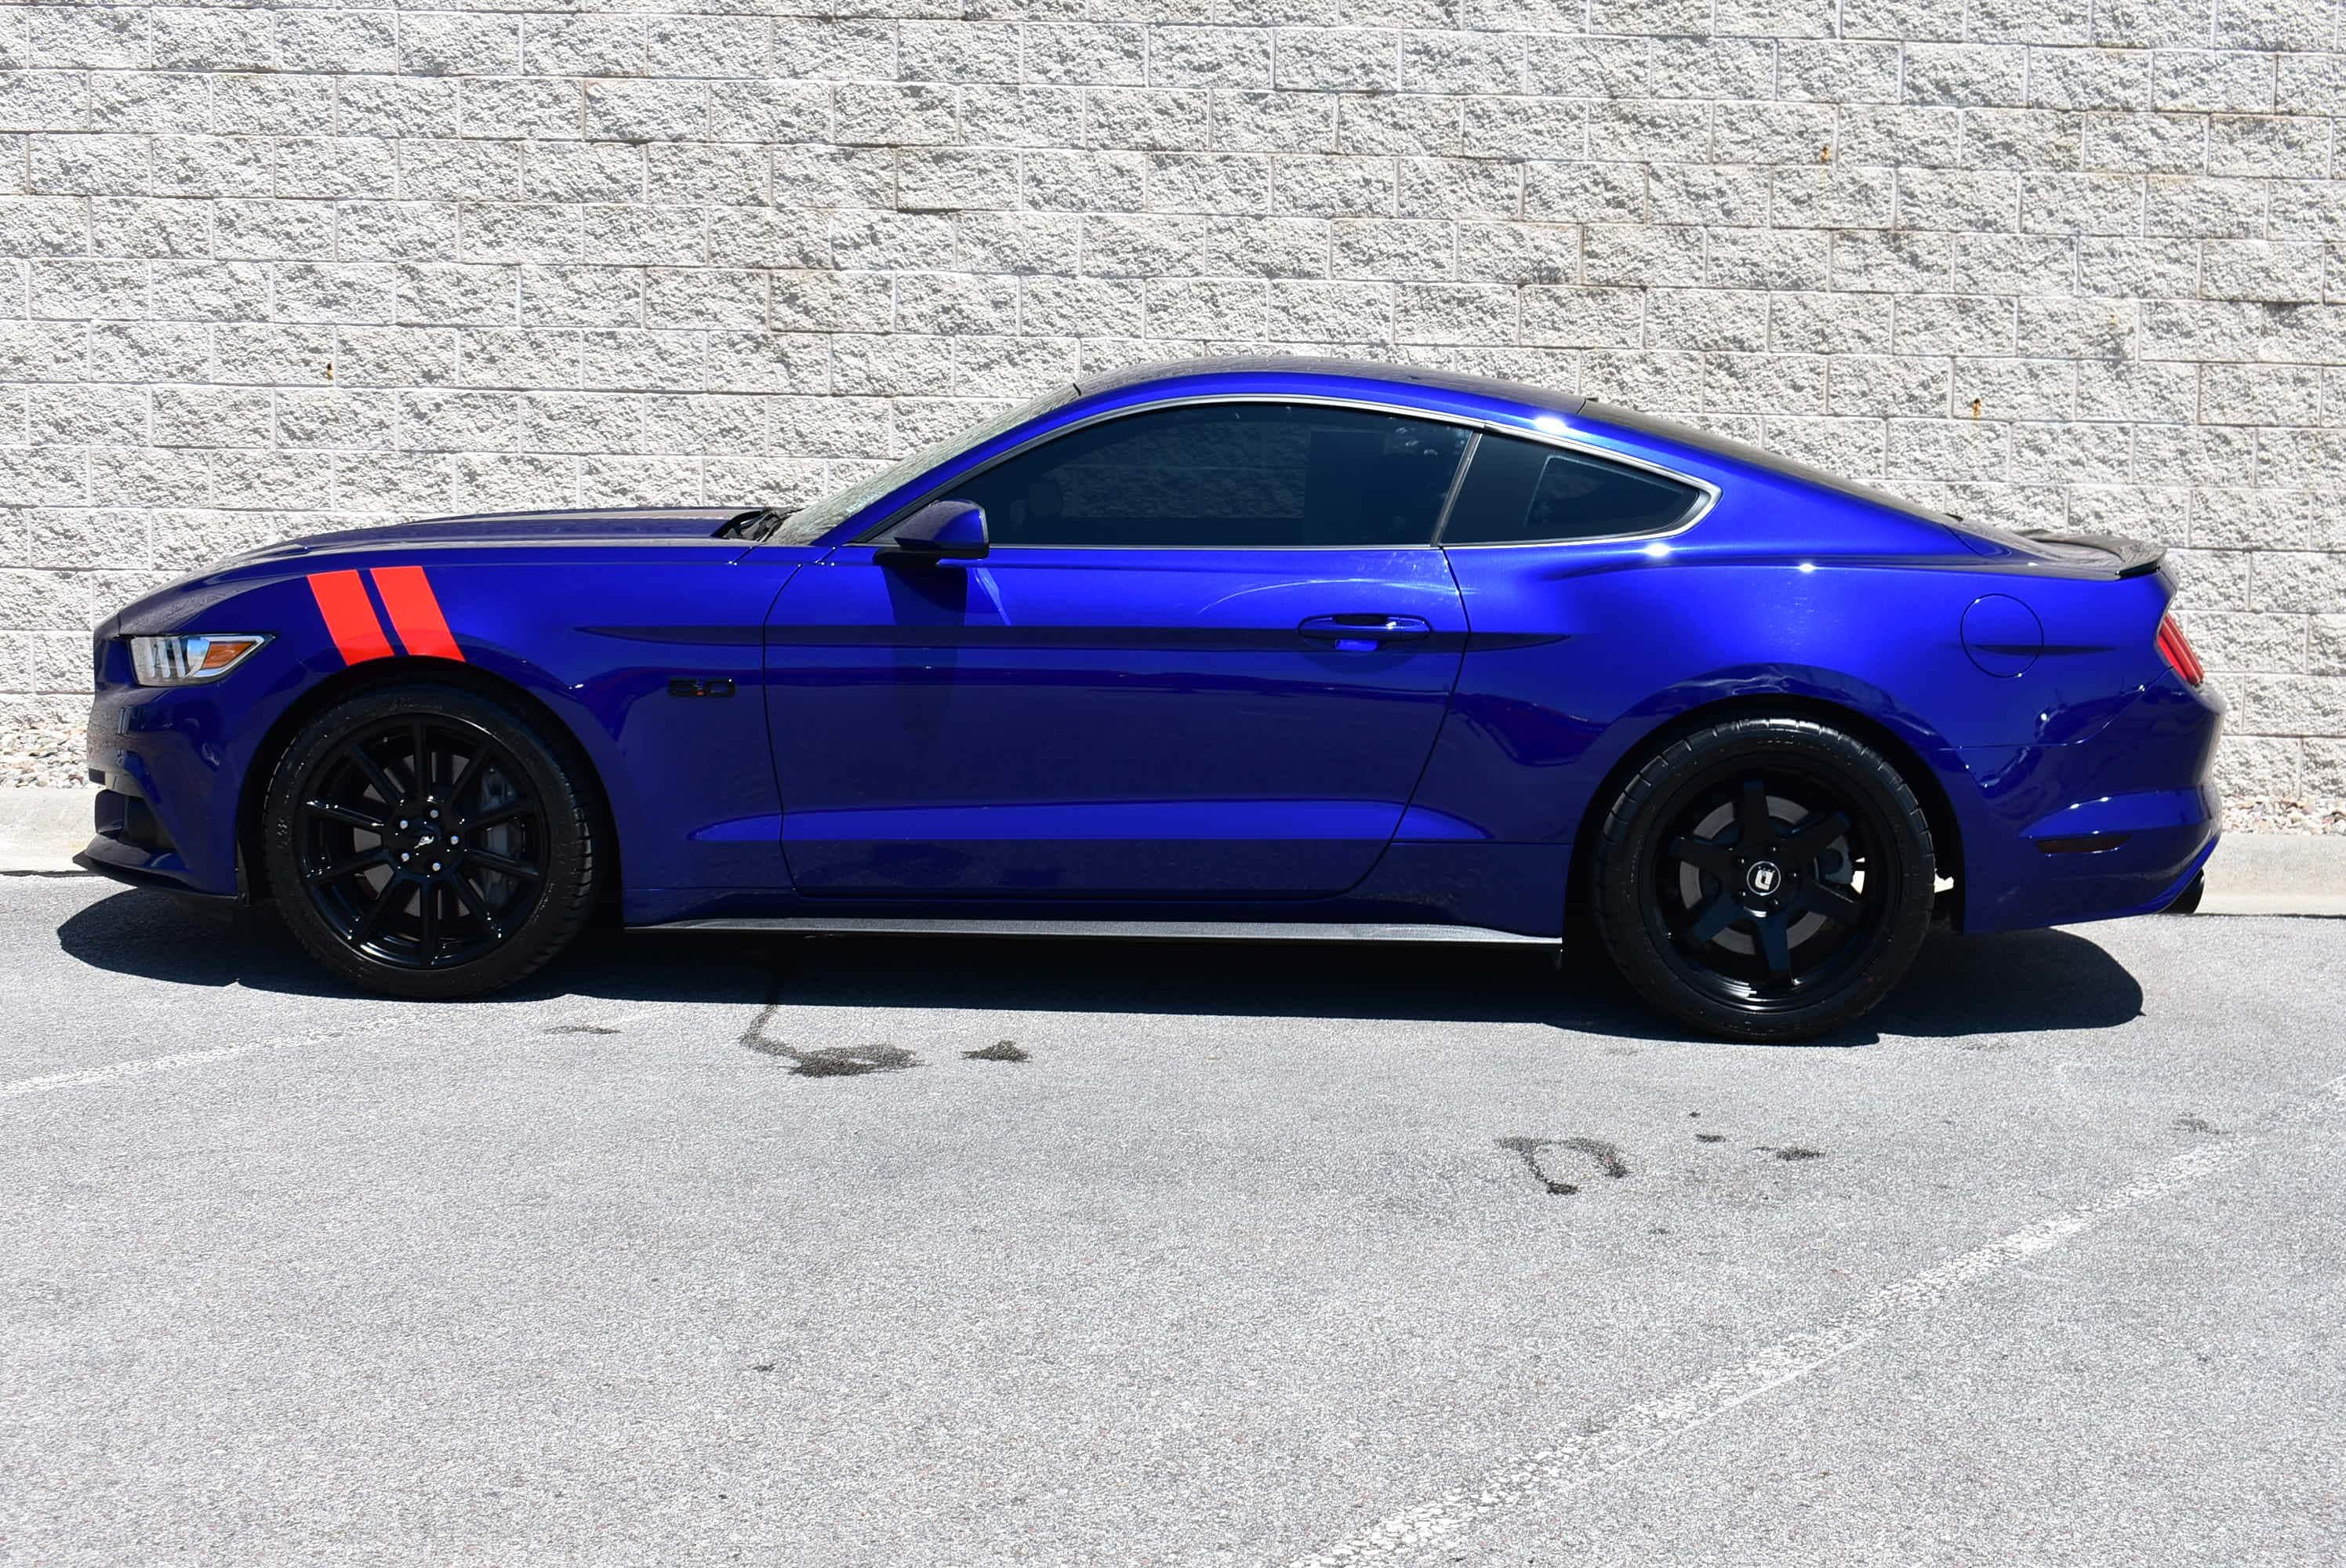 Pre Owned 2016 Ford Mustang 2dr Fastback GT 2dr Car in Omaha